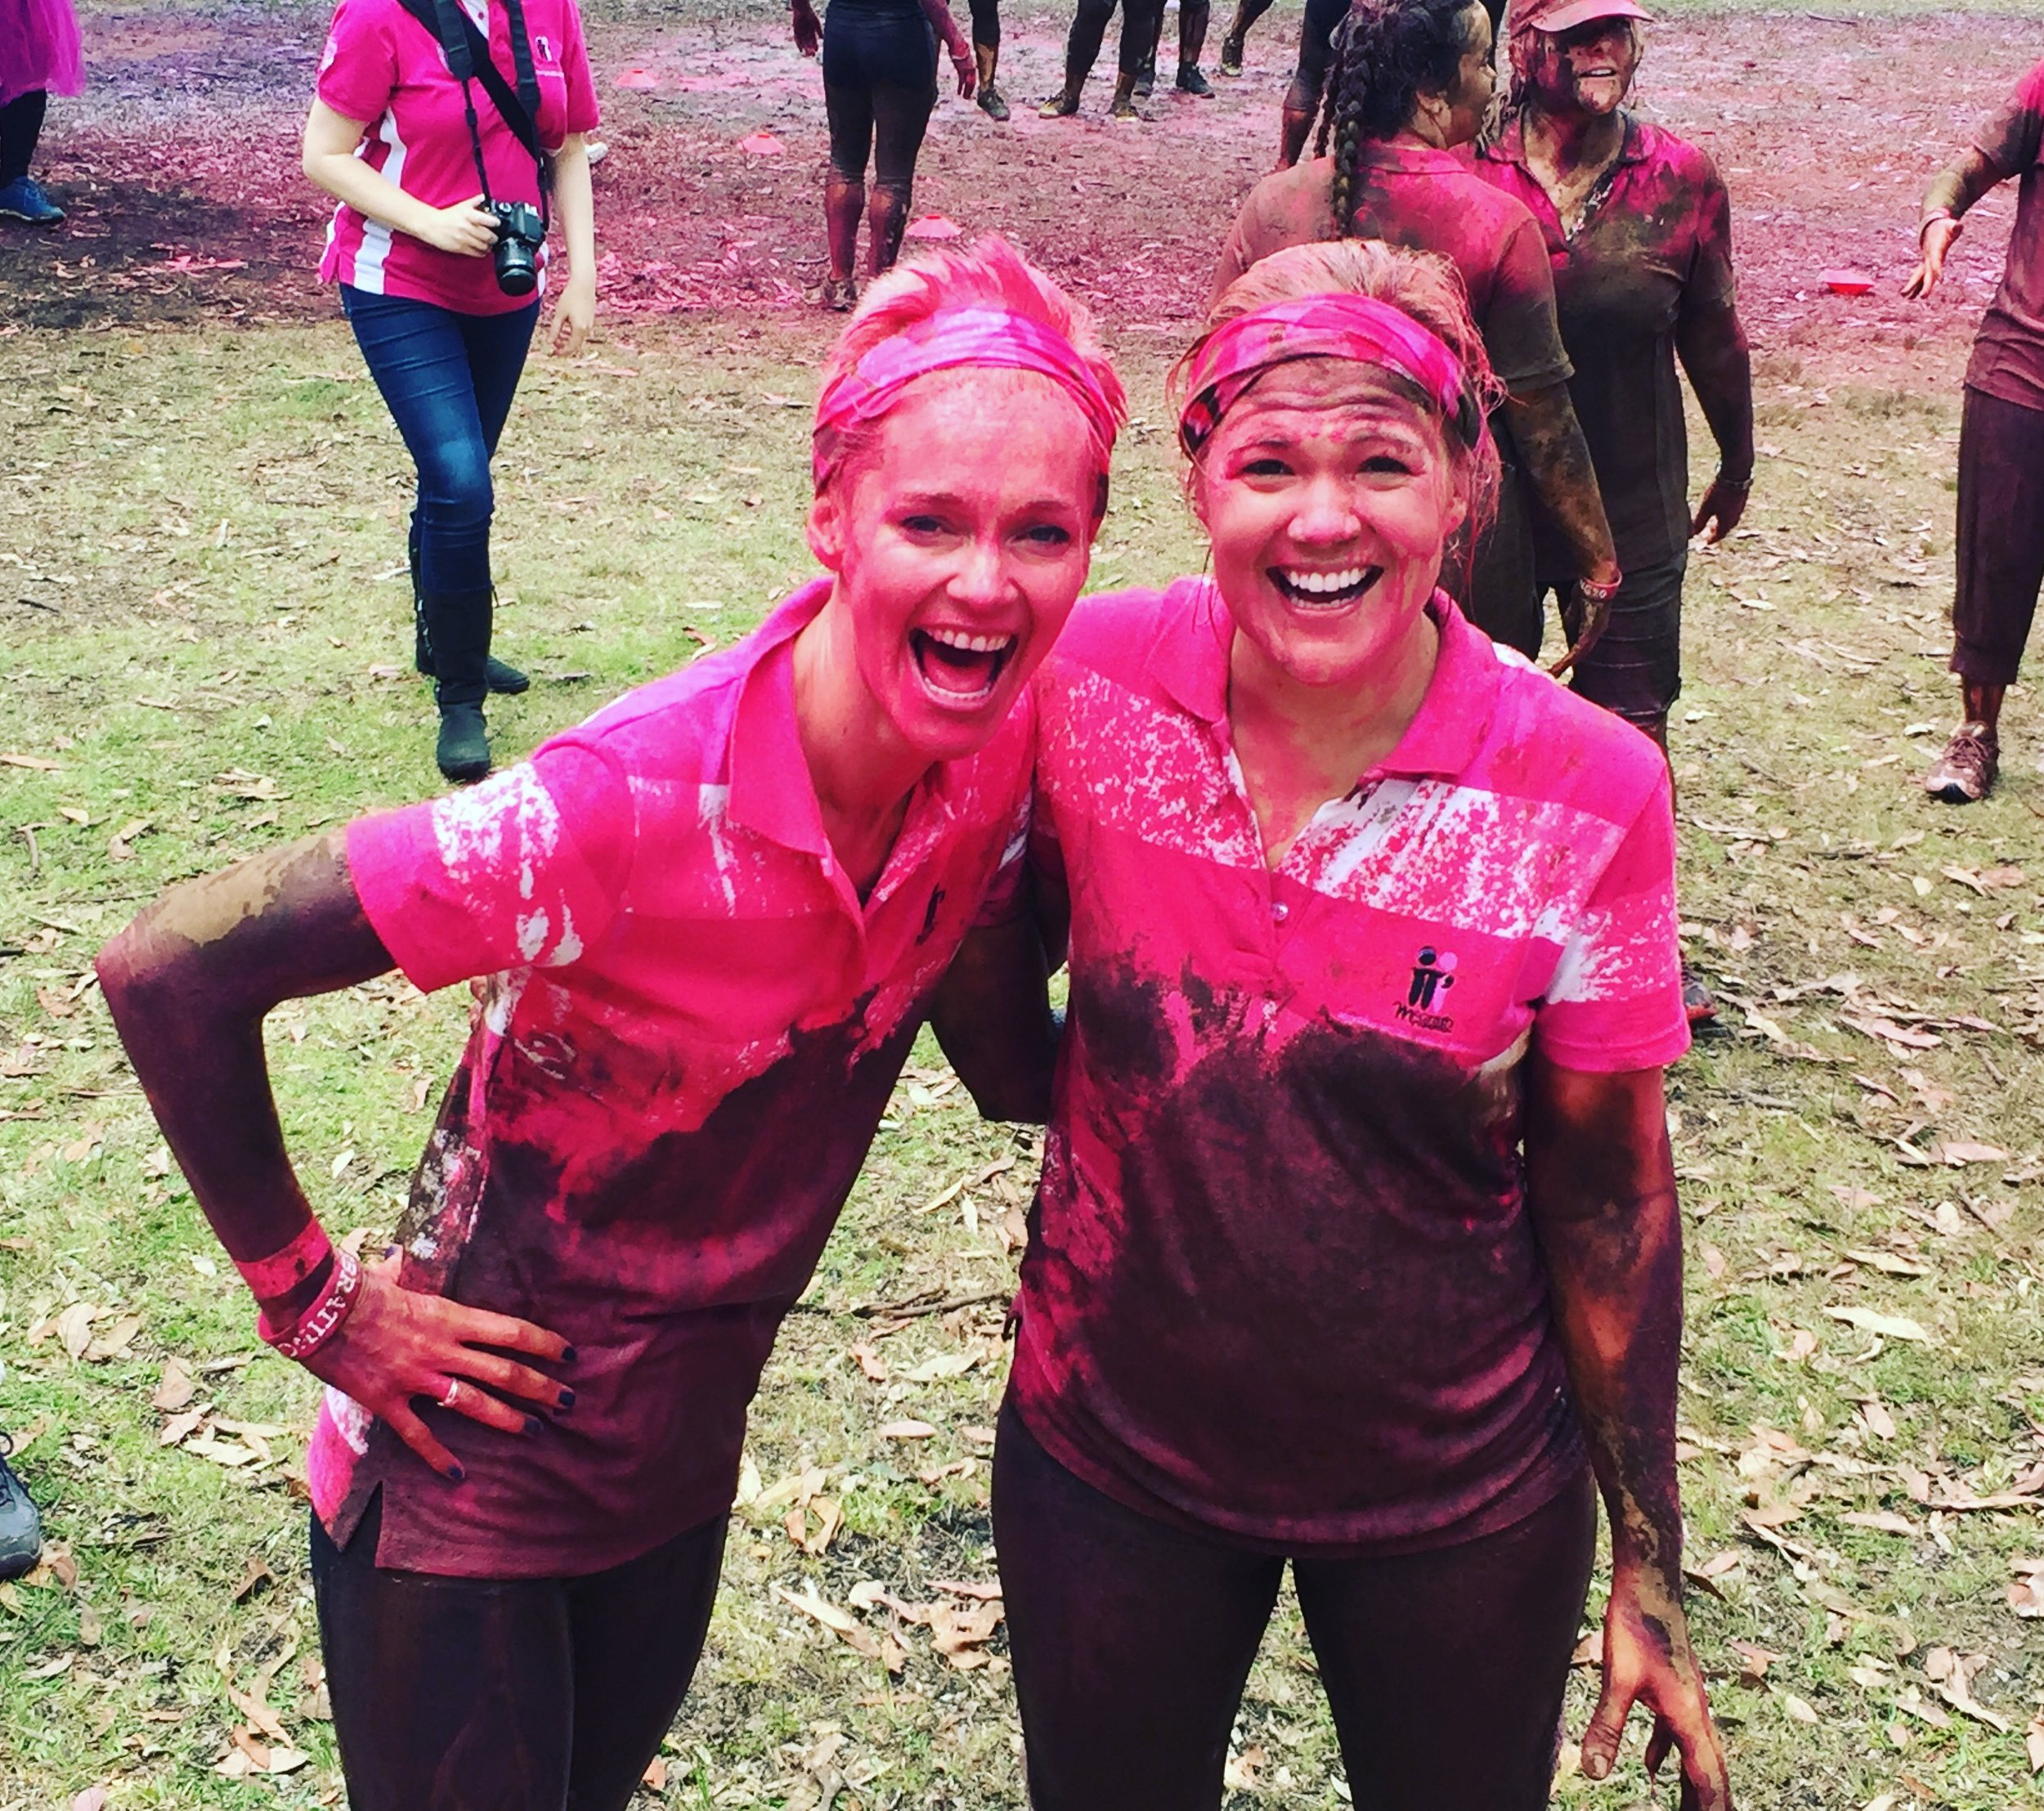 Getting pink and dirty with Sarah for Miss Muddy.